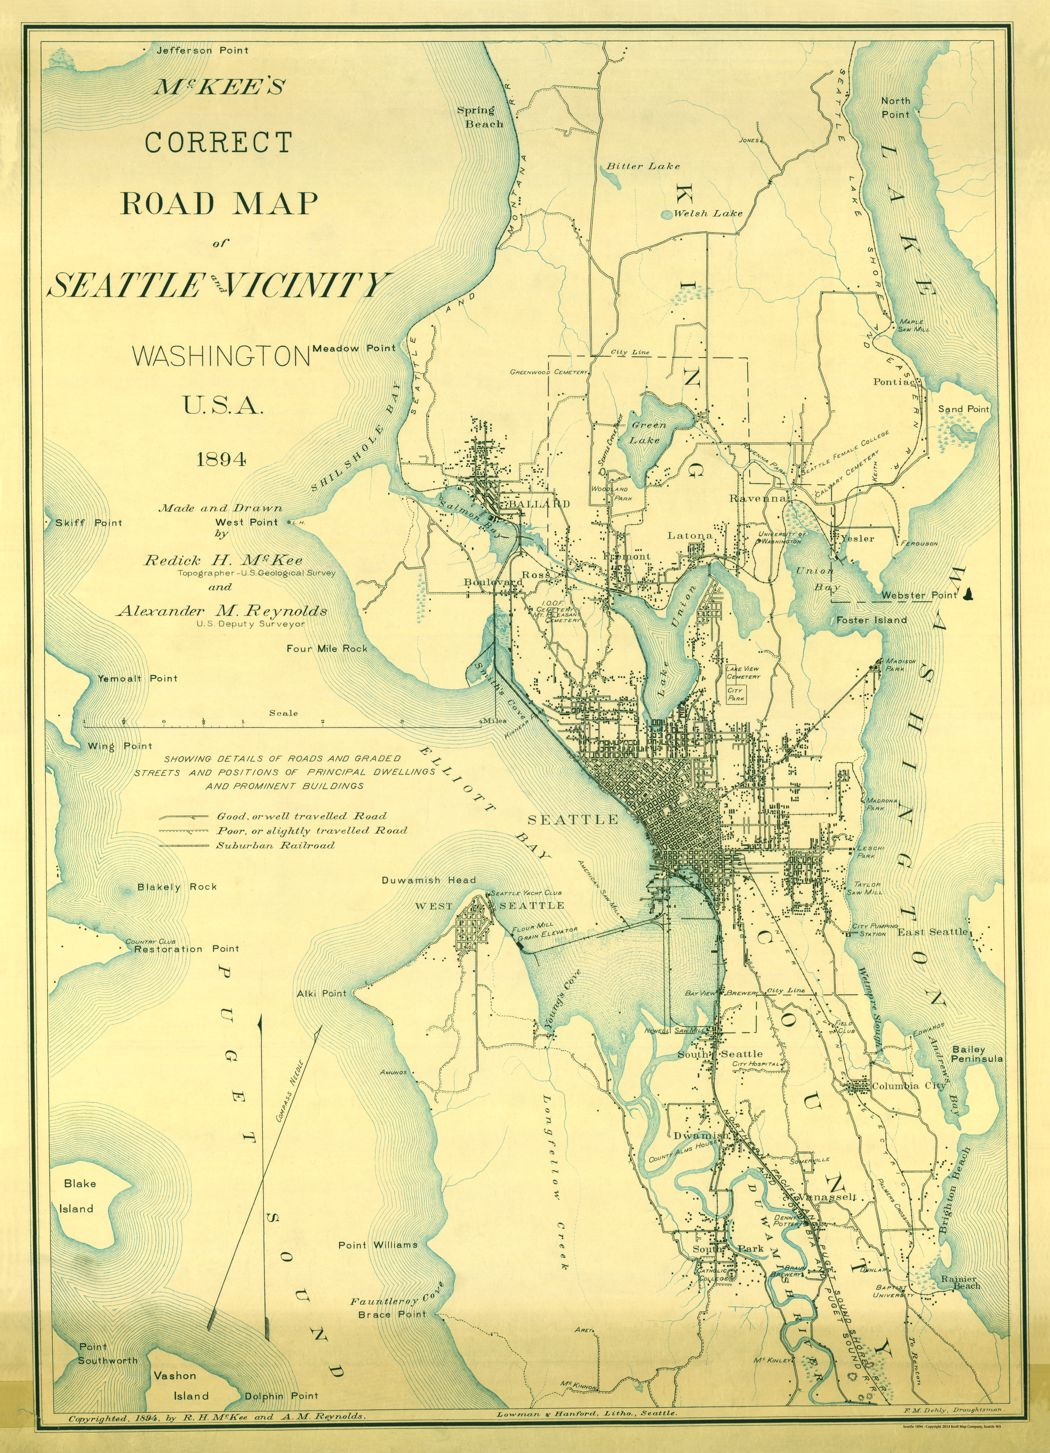 Seattle Historical Maps - Kroll Map Company on map l, map i, map a, map s, map c, map d, map e, map b,